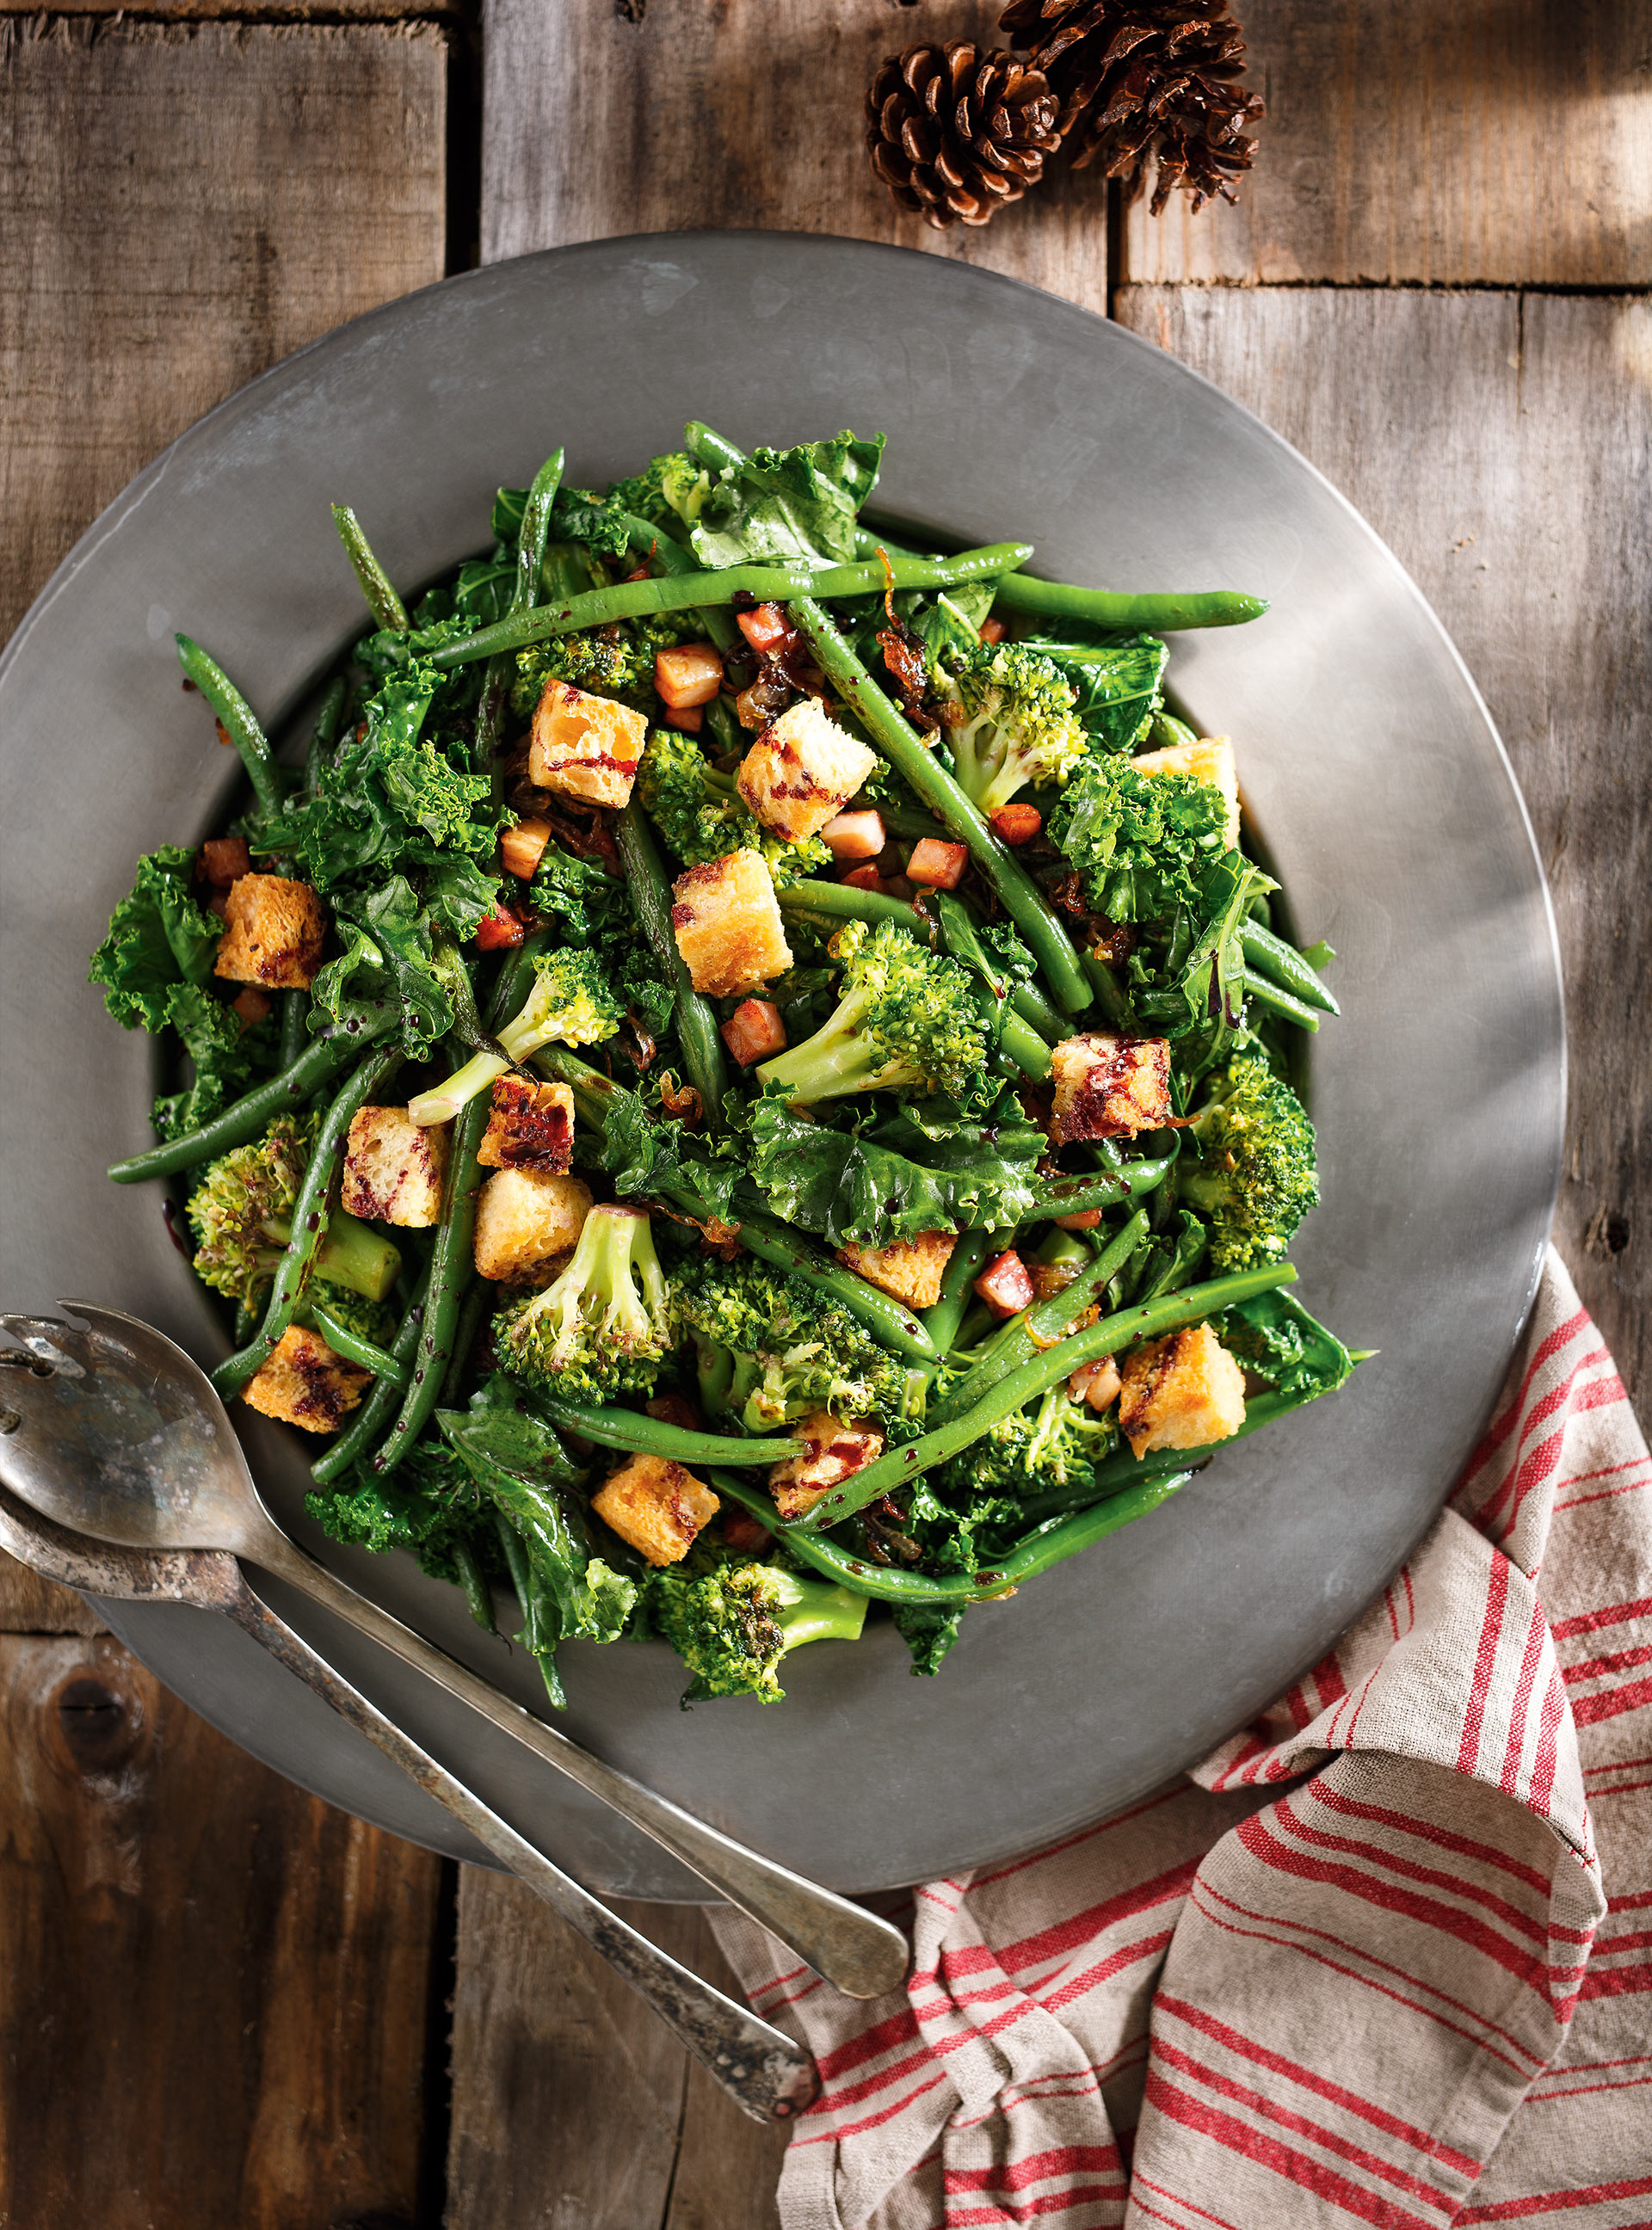 Sautéed Greens with Red Wine Reduction